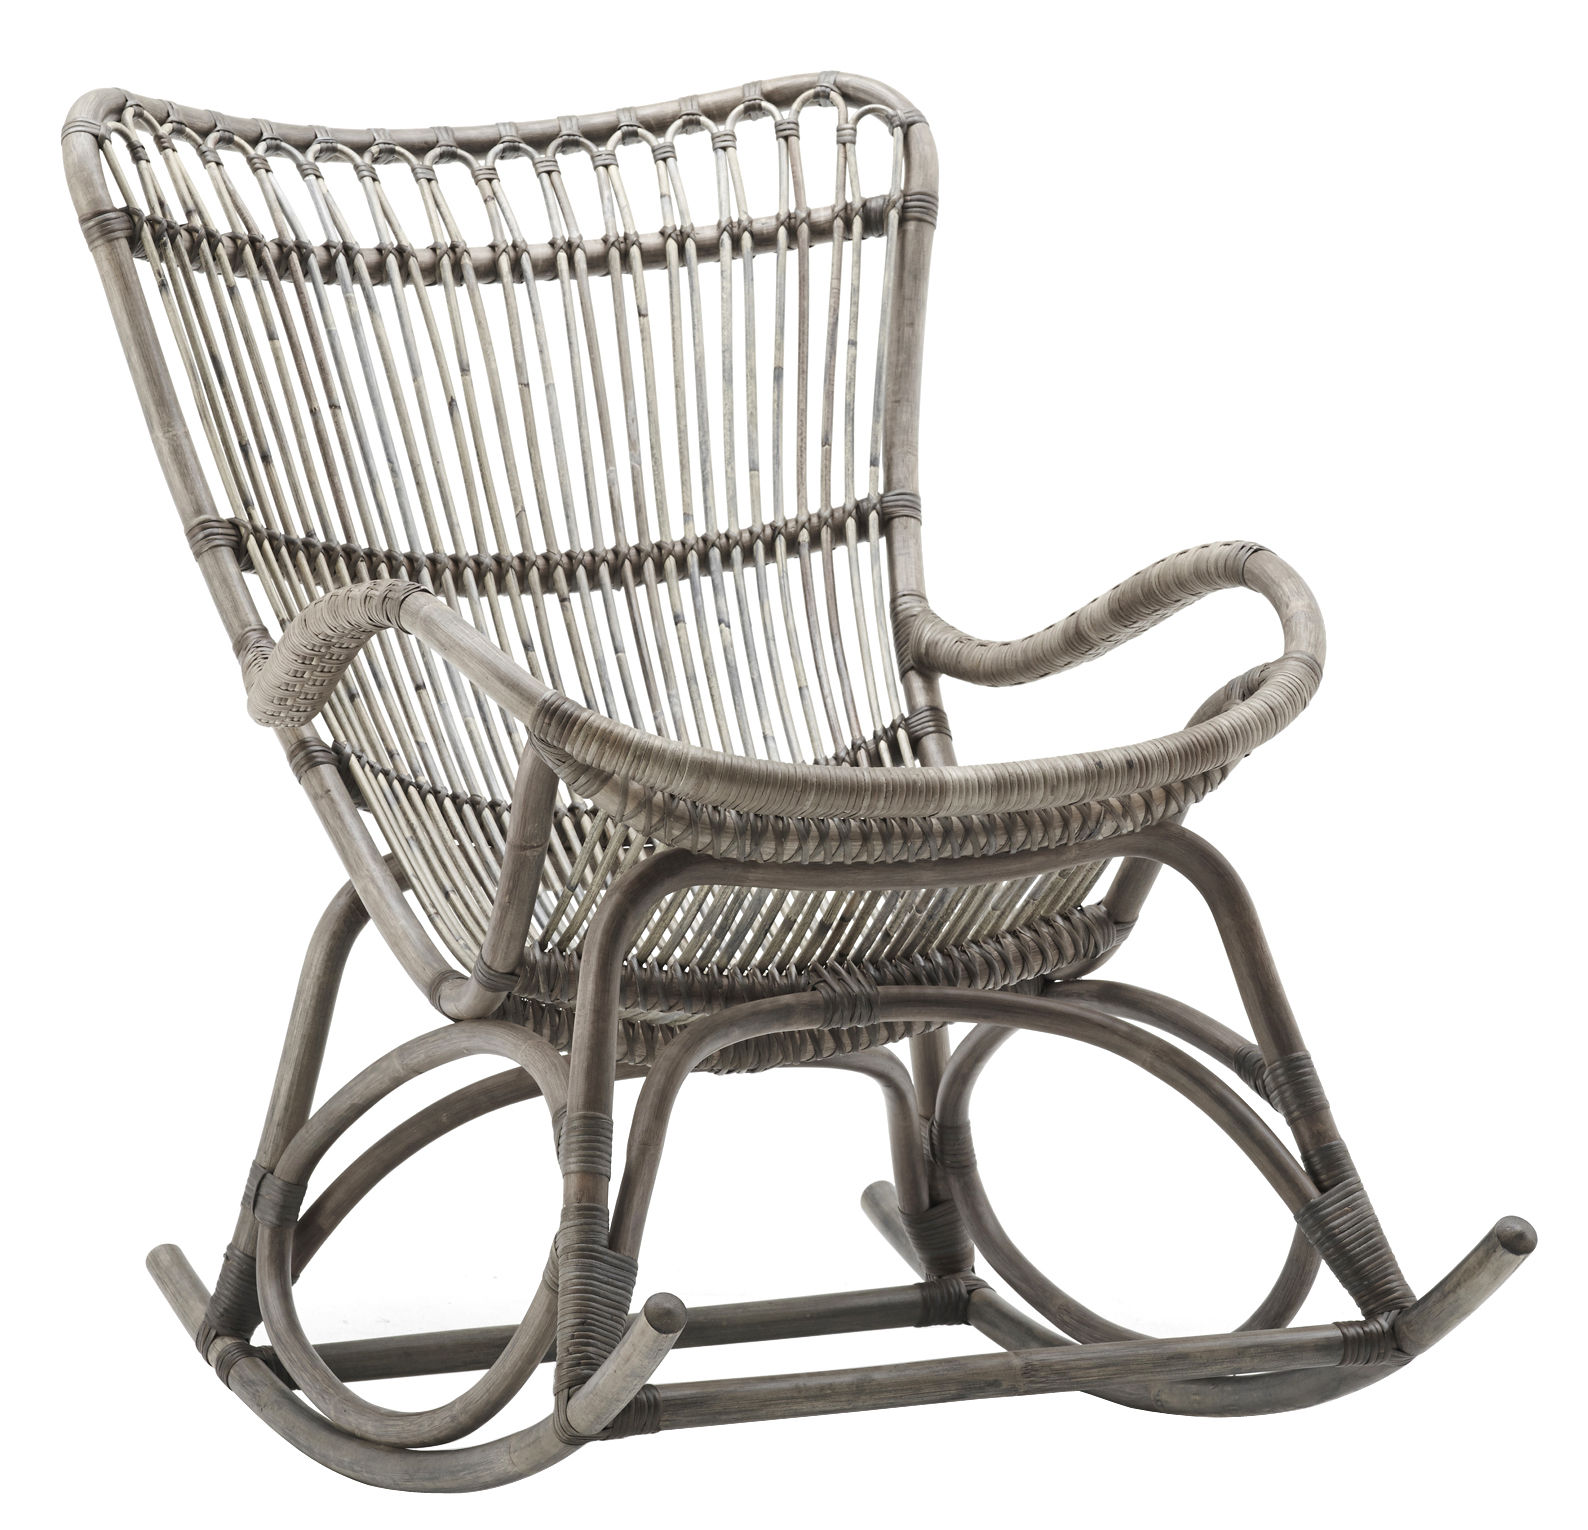 Mobilier - Fauteuils - Rocking chair Monet - Sika Design - Taupe - Rotin